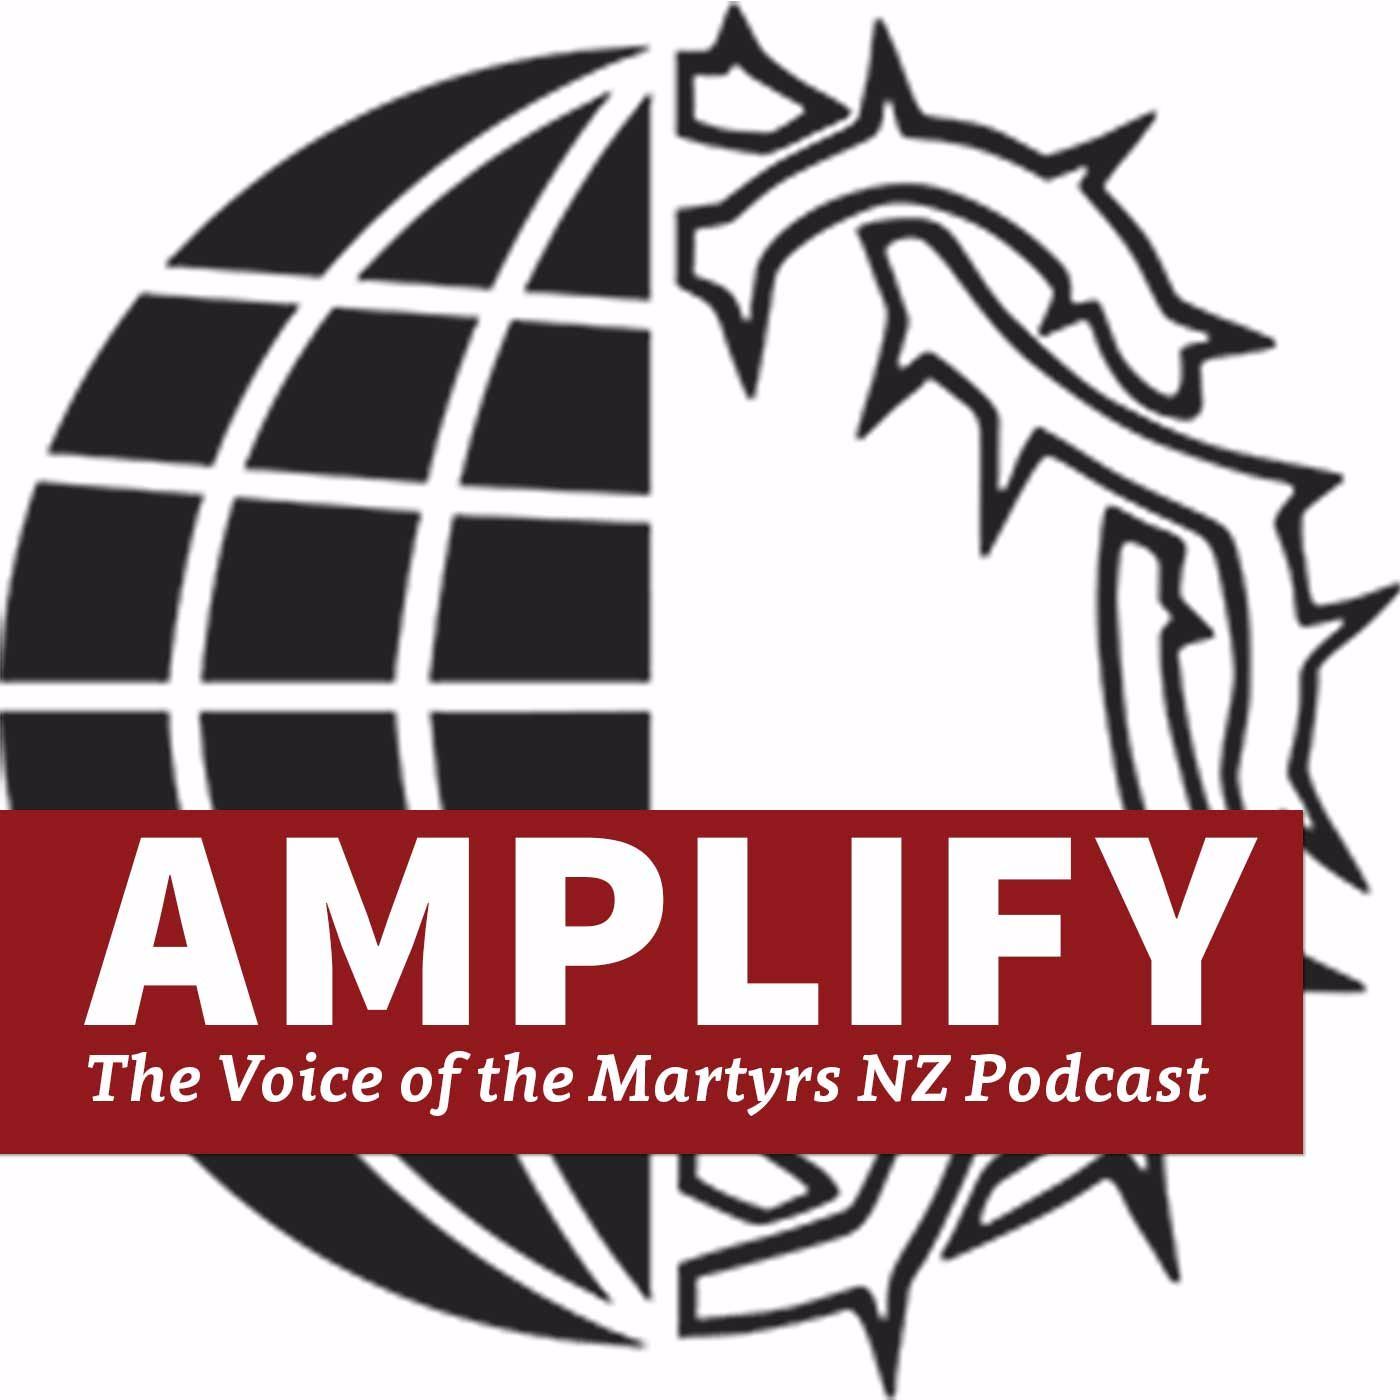 Amplify - the Voice of the Martyrs NZ podcast | Listen via